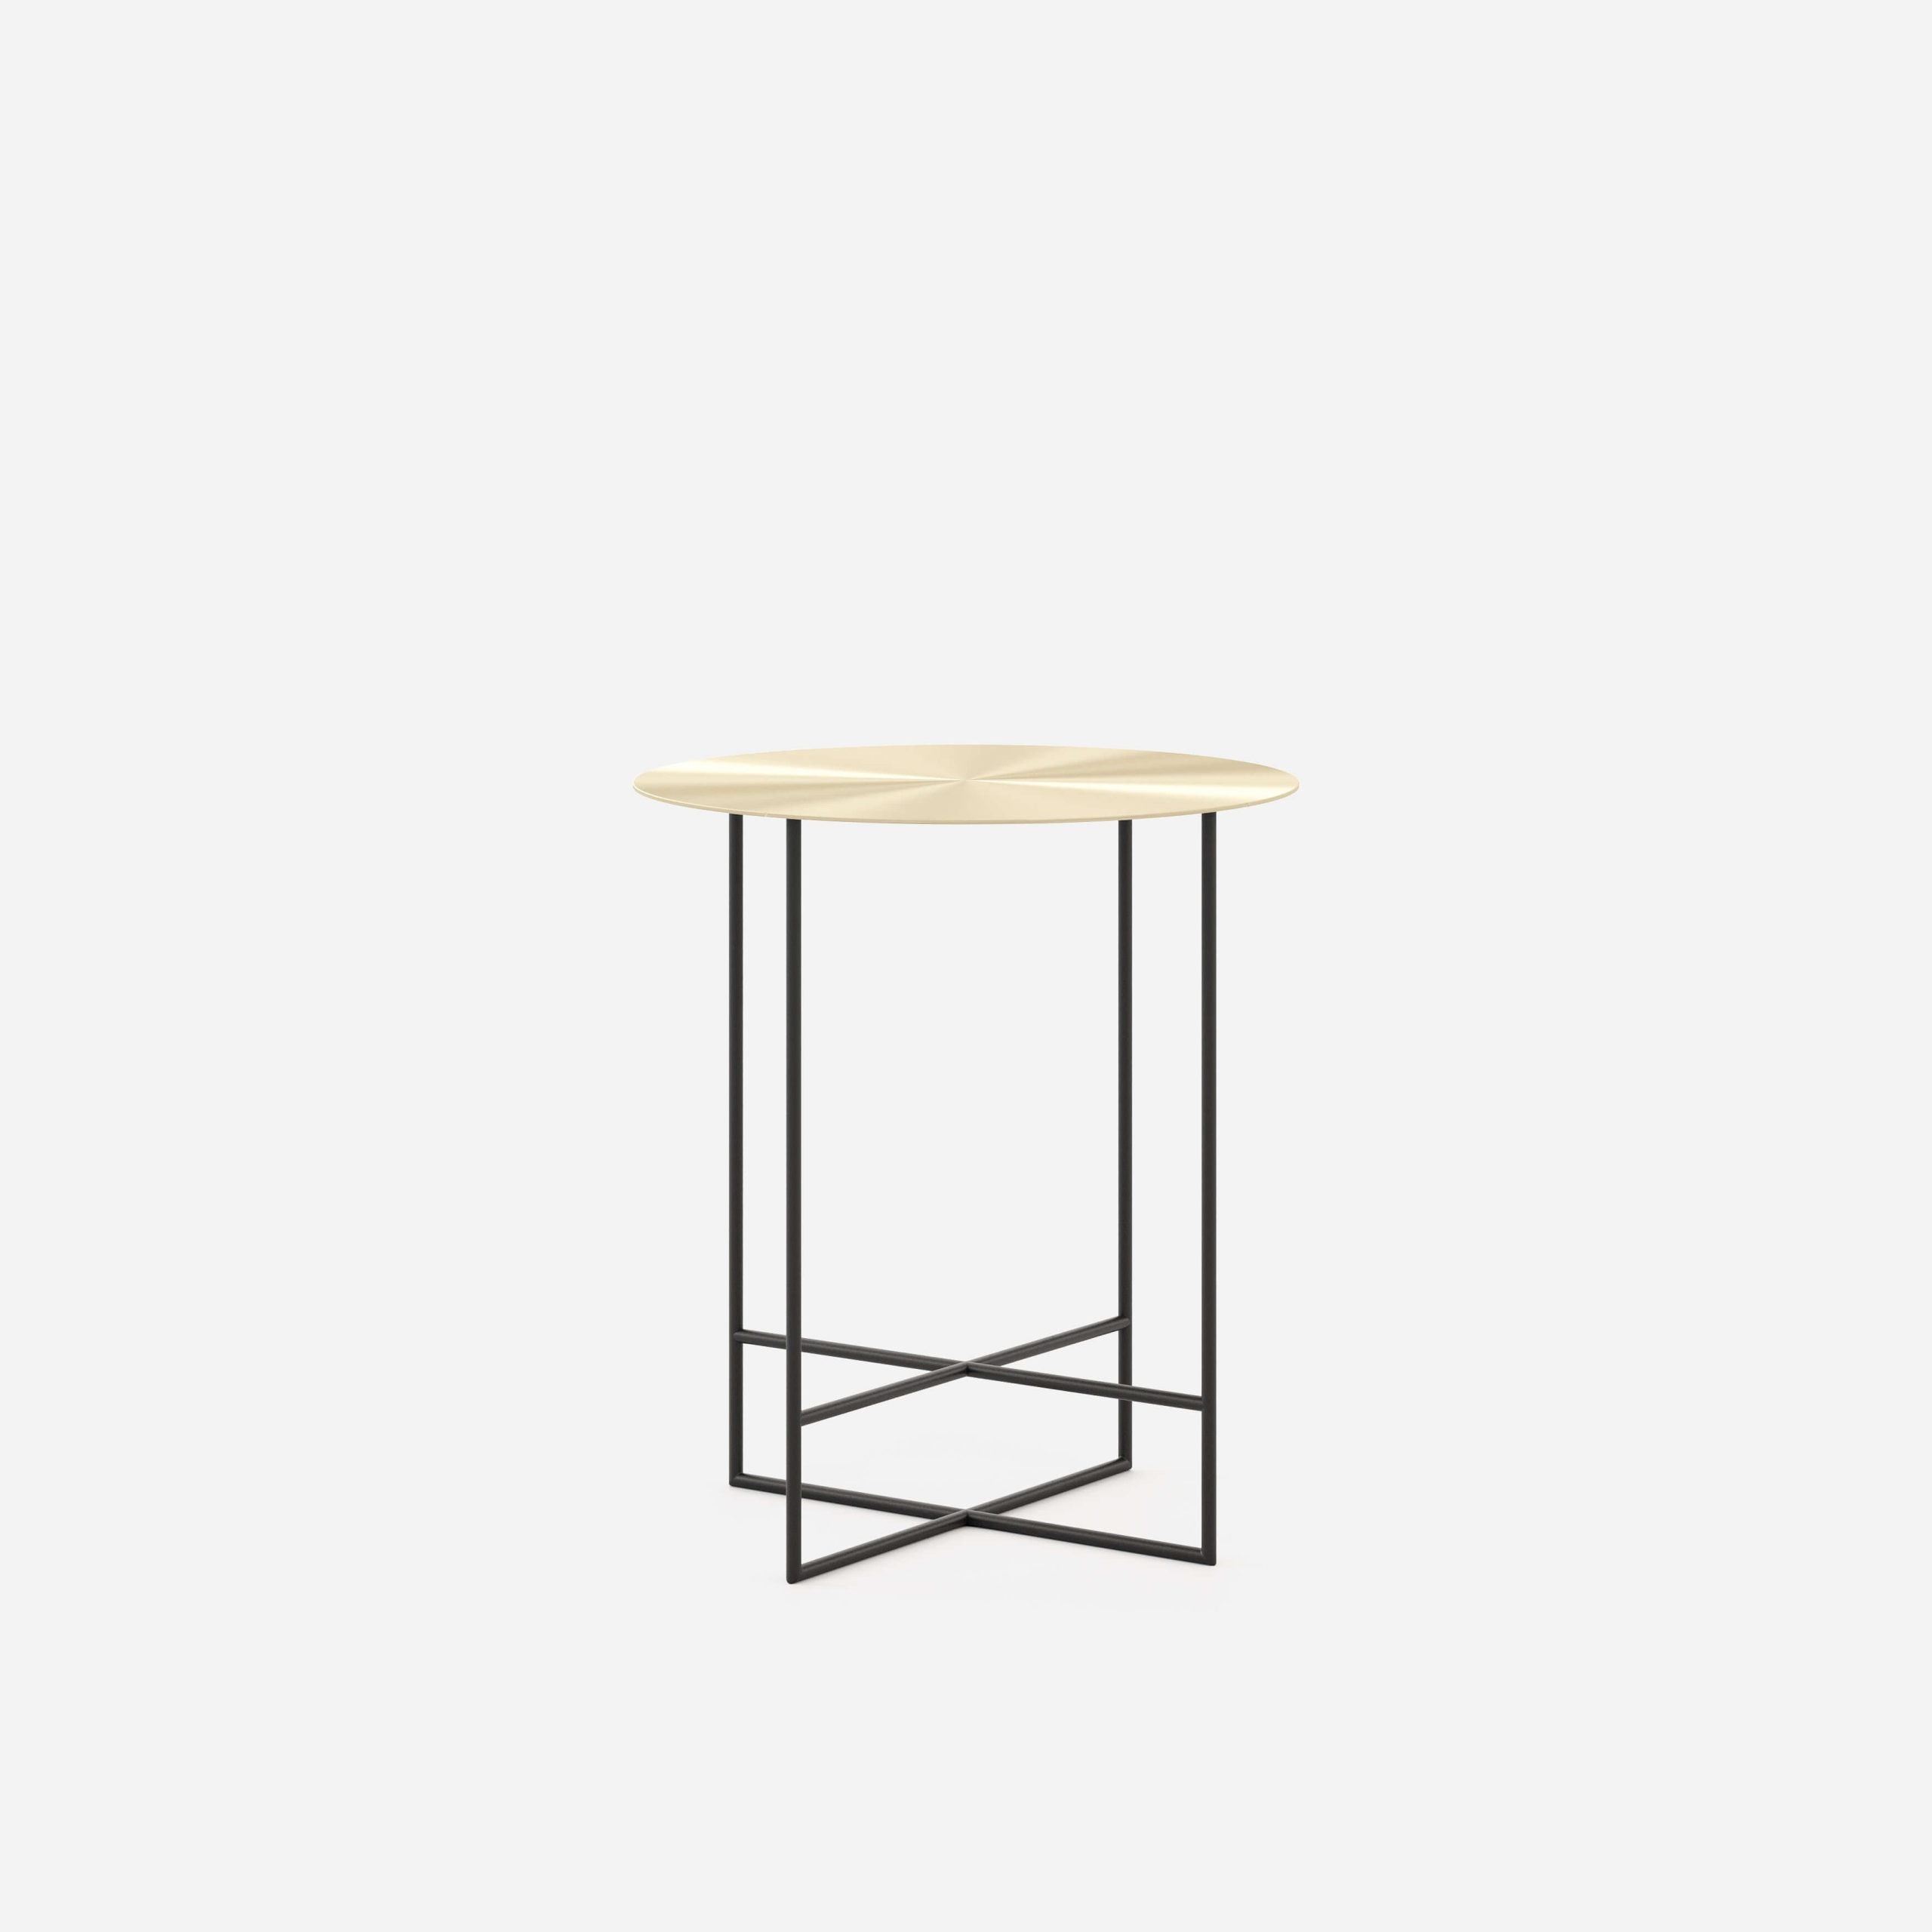 Inside Side Table Tall By Domkapa, Tall Side Tables Living Room